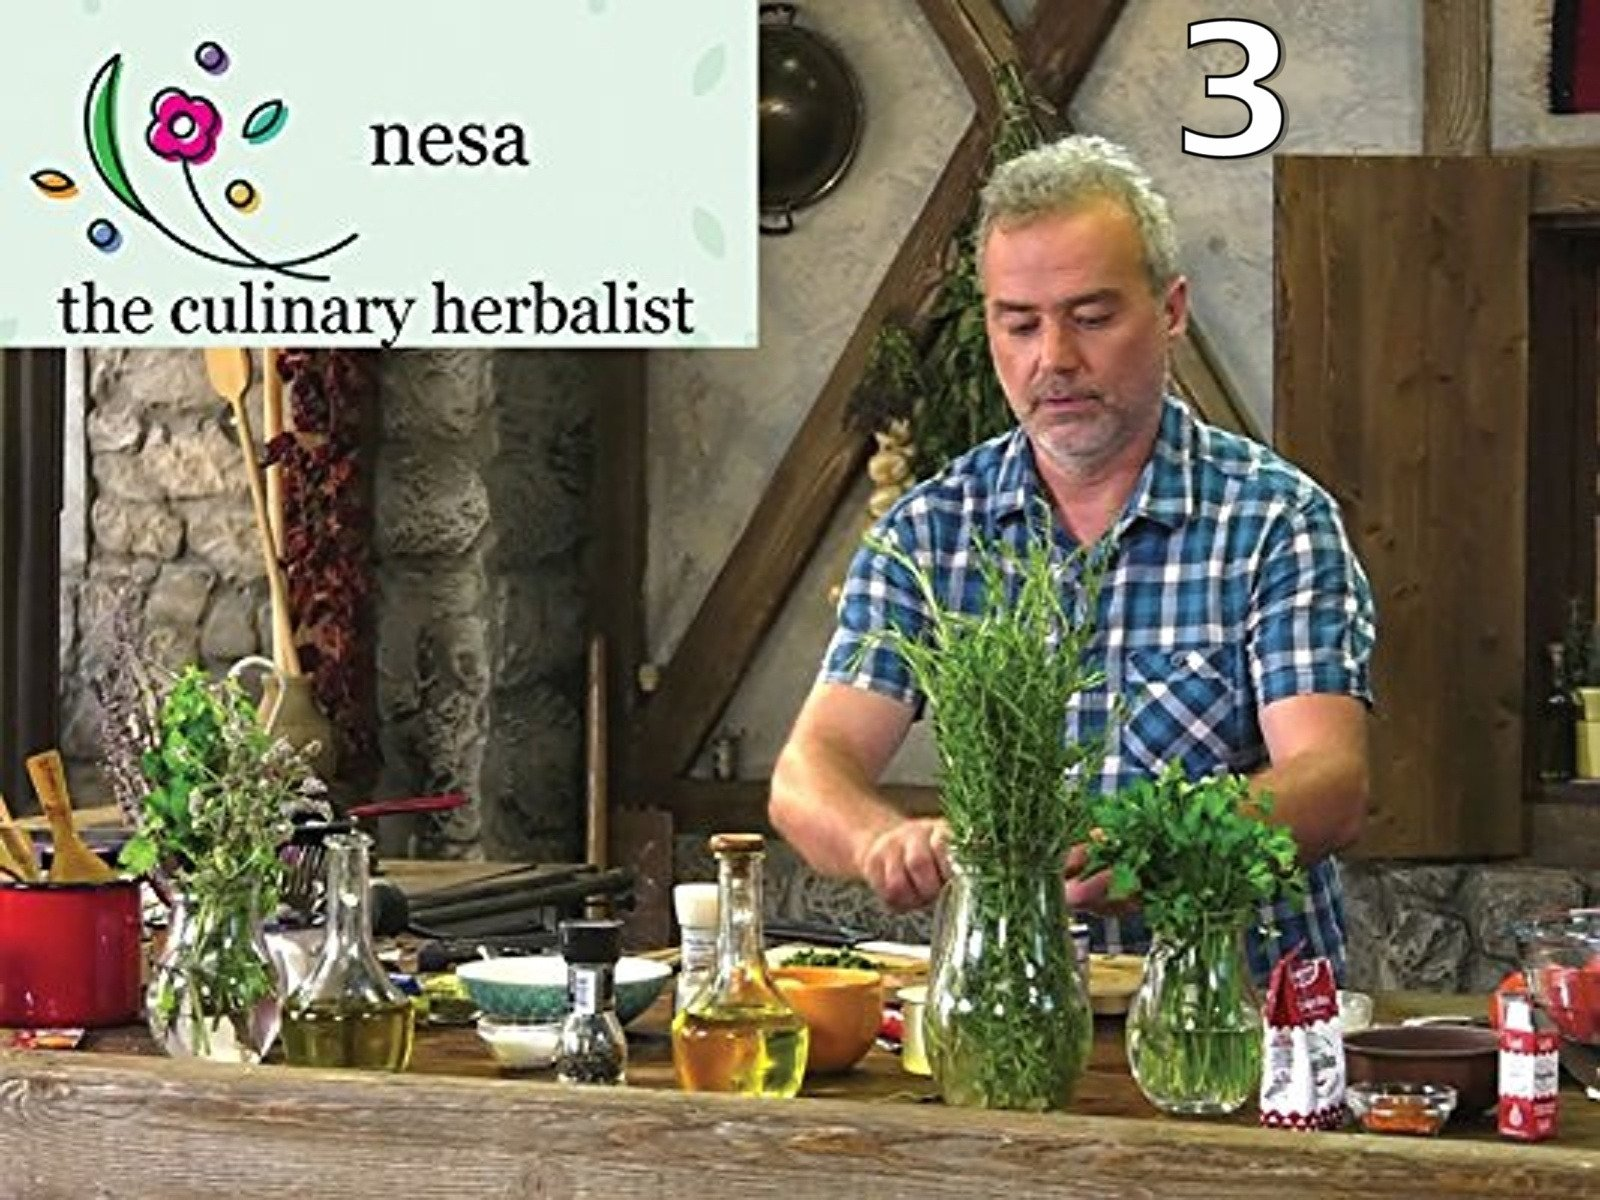 Nesa The Culinary Herbalist - Season 3